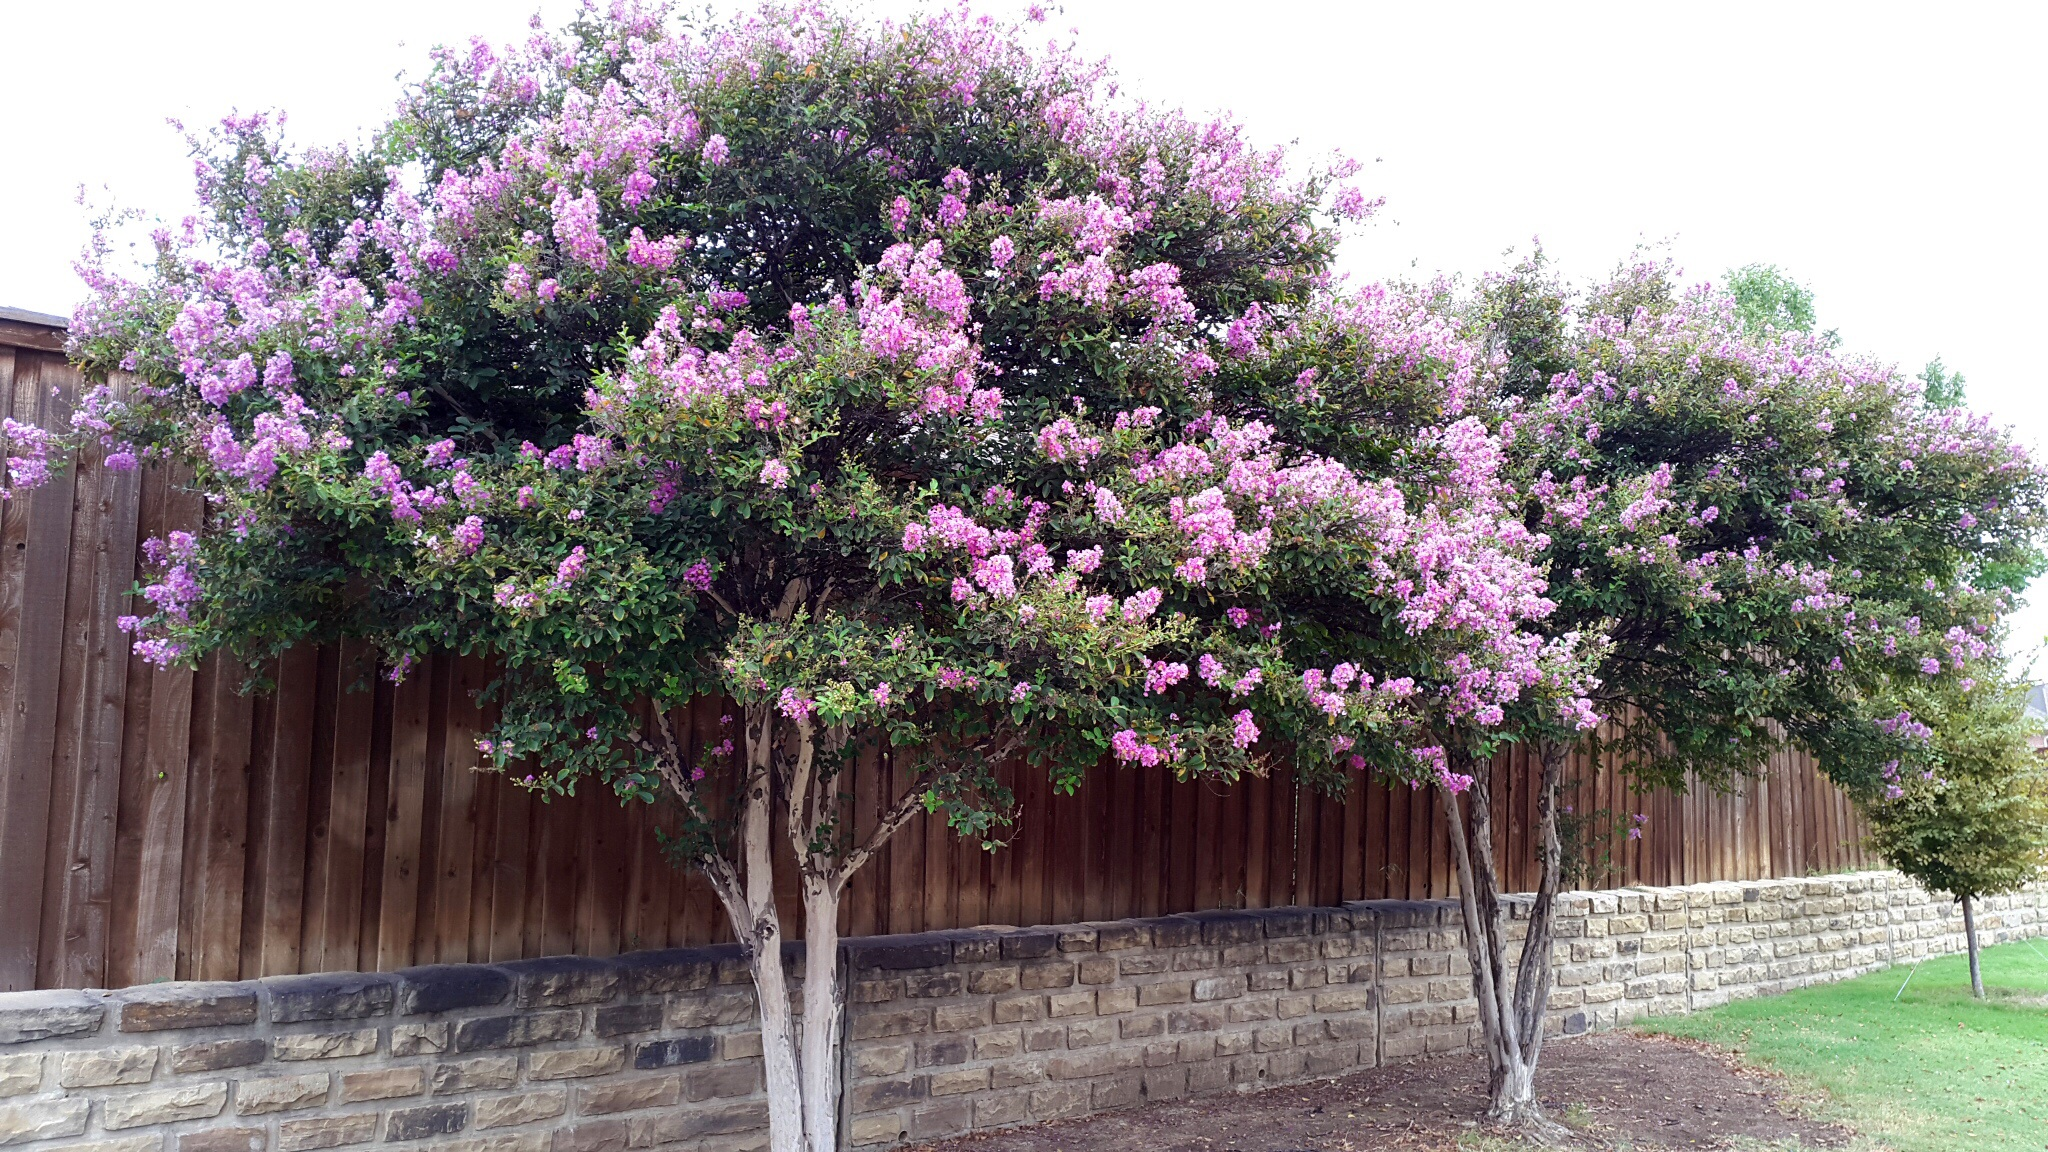 Ideal Image Crepe Myrtle Jugnoo Farms Trees Green Leaves Trees Purple Flowers Seed Pods Purple Flowers houzz-03 Trees With Purple Flowers